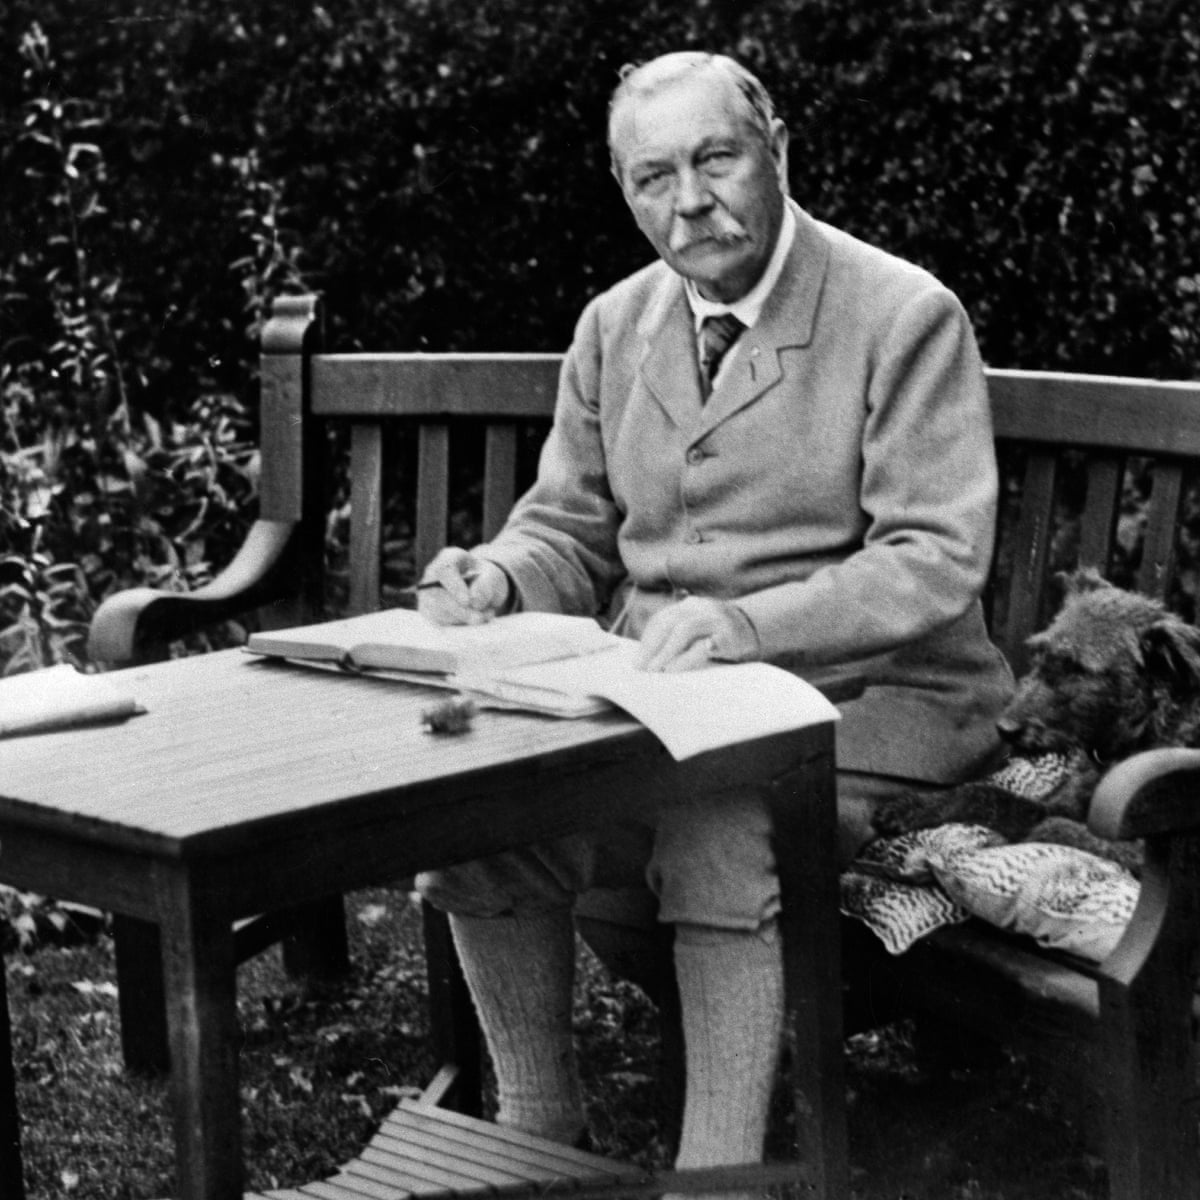 Sir Arthur Conan Doyle changes his mind about Irish home rule ...